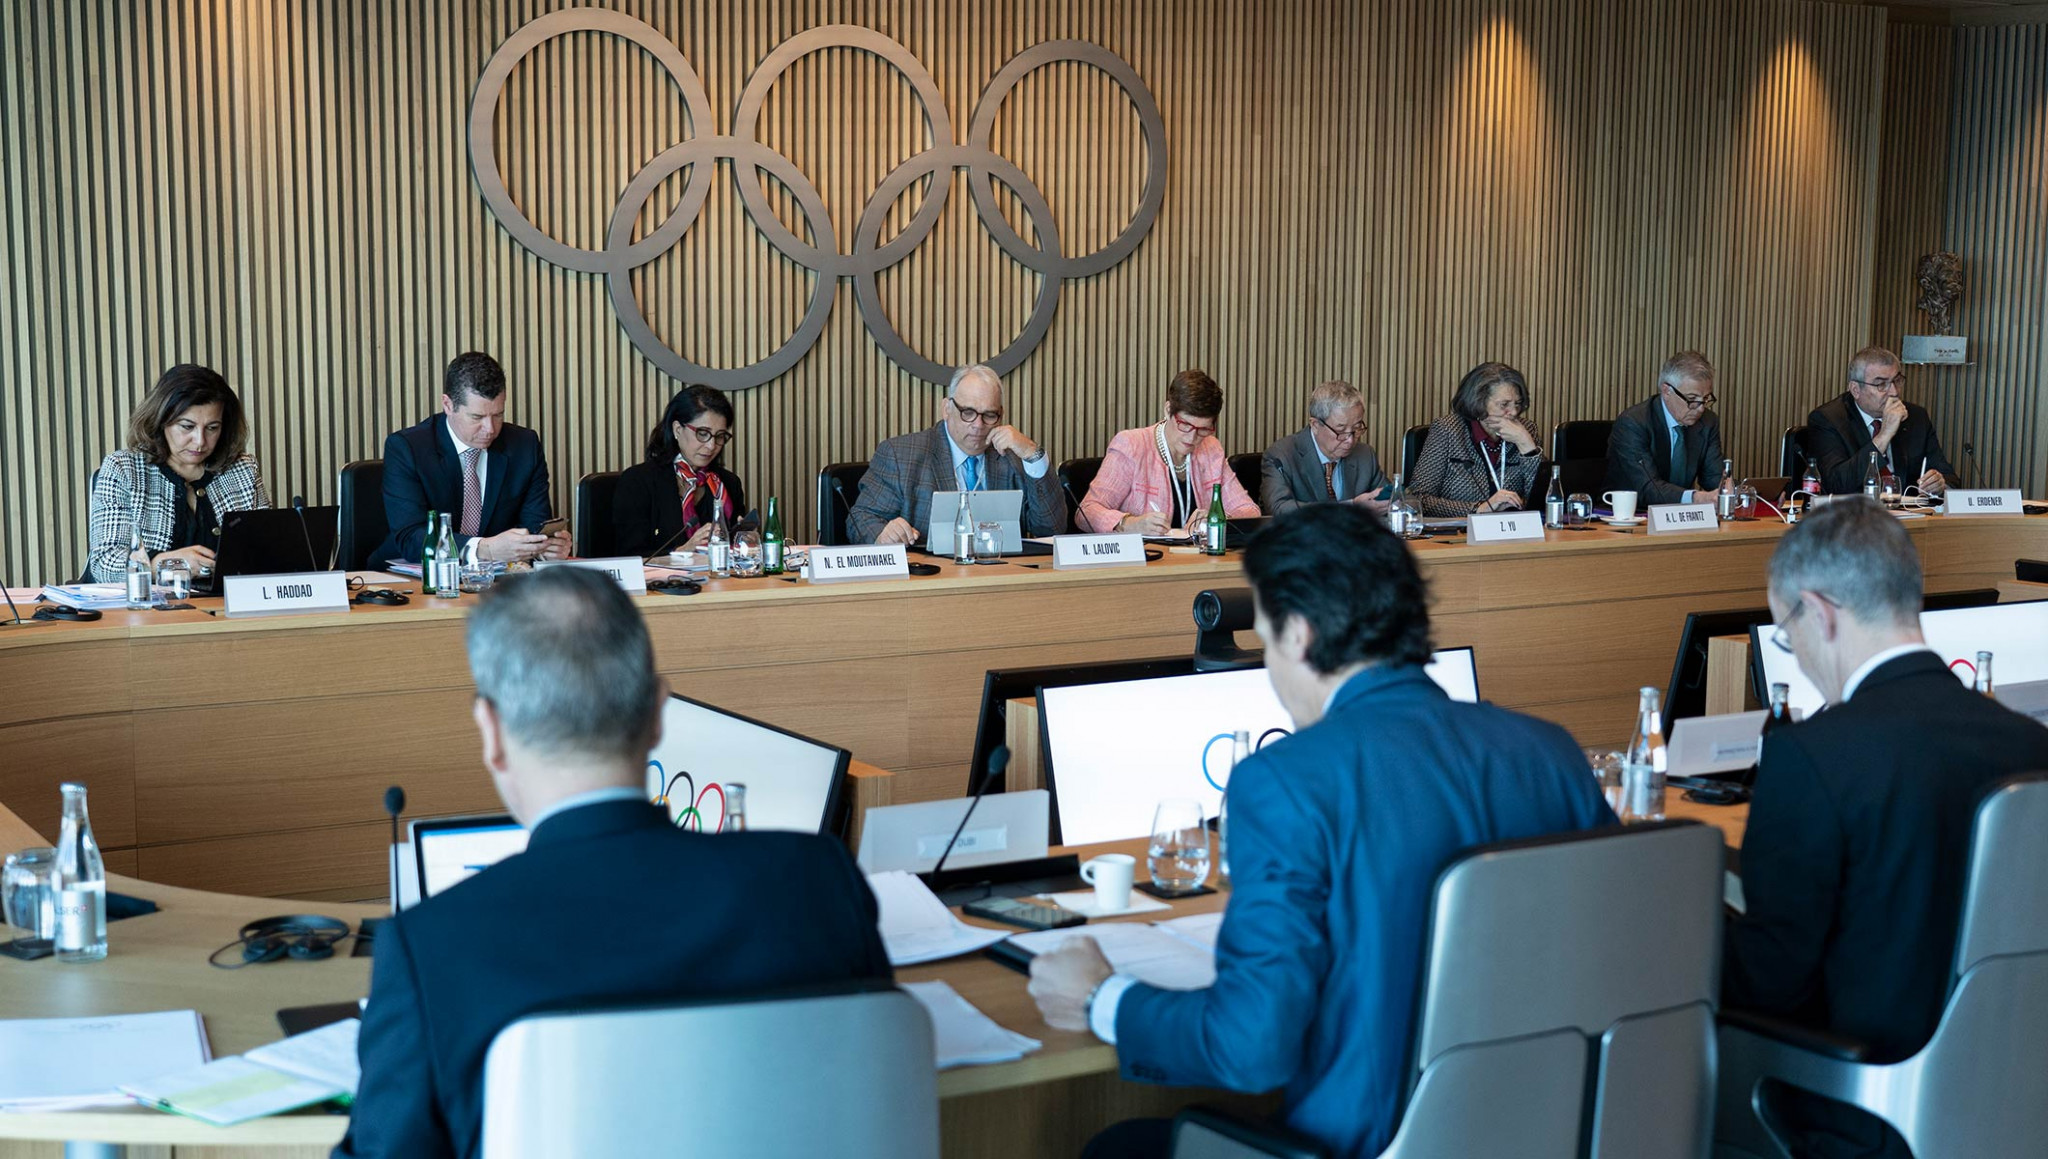 The International Olympic Committee is due to hold a conference call tomorrow with International Federations, to discuss the disruptions so far caused by the coronavirus outbreak to qualification for the Tokyo 2020 Olympics and Paralympics. But will the Games even go ahead as planned? ©Getty Images